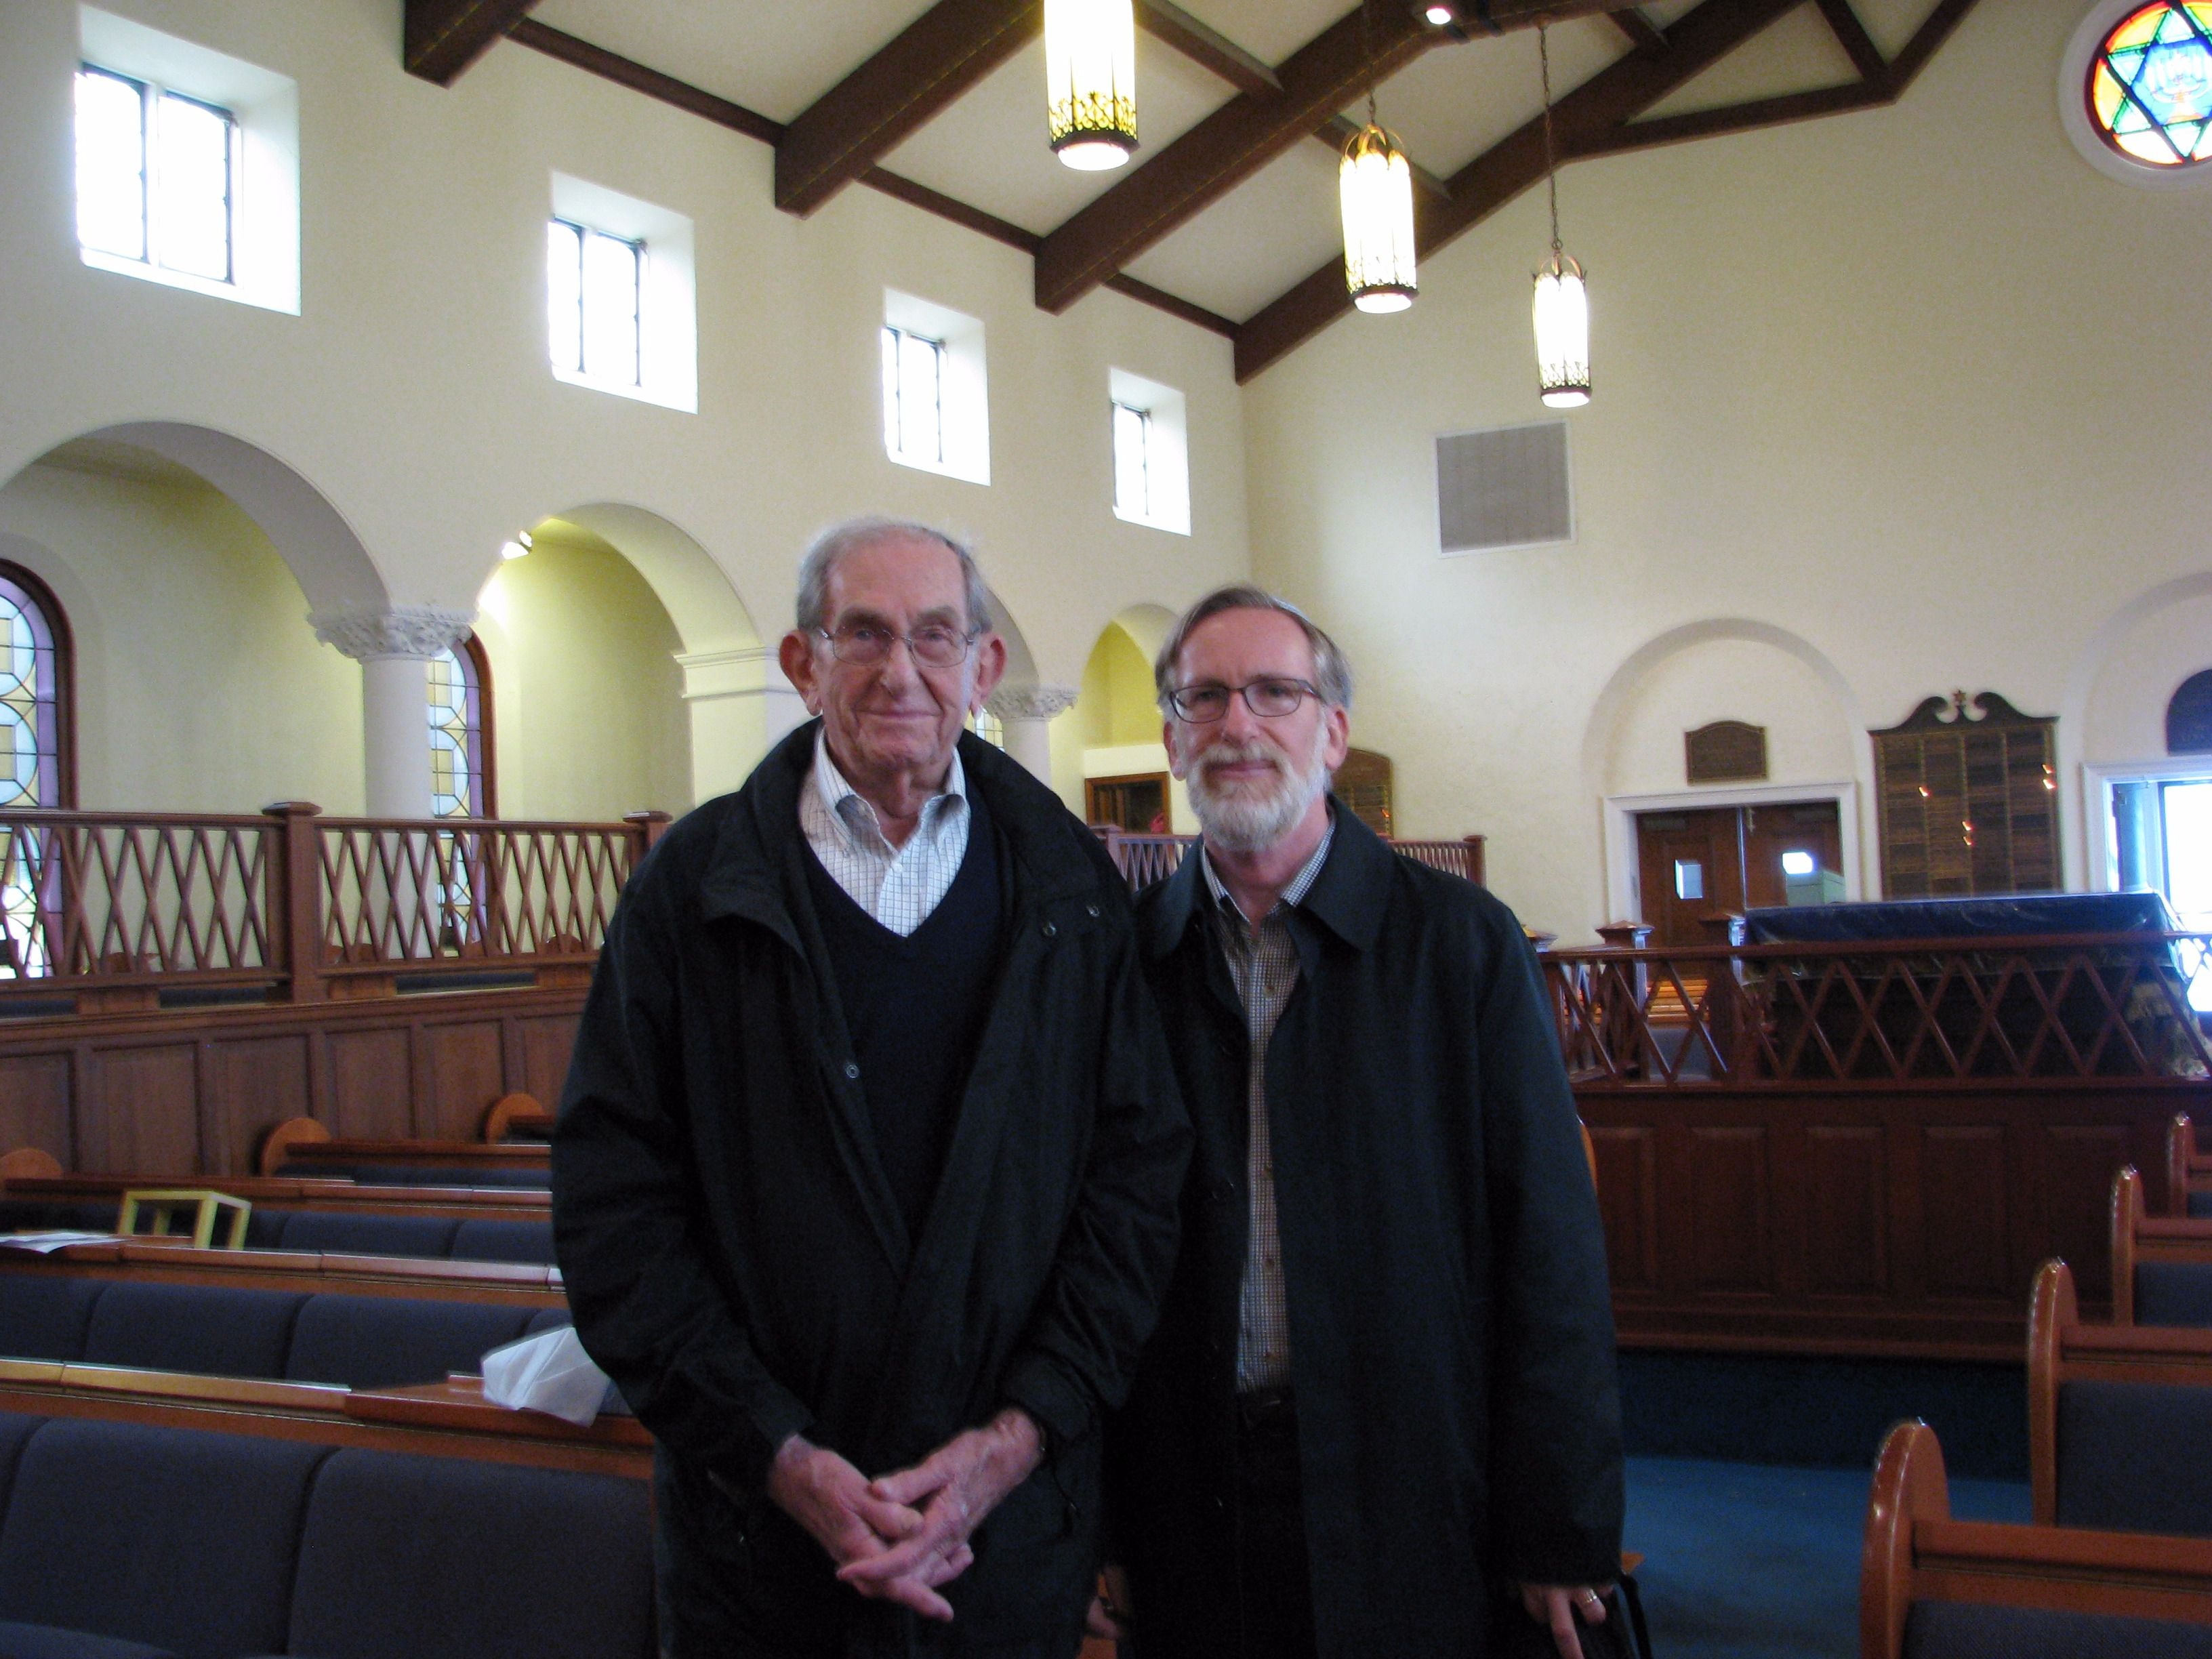 Father and Son: Kenneth (left) and Mark Berger pose in the B'nai Israel sanctuary.